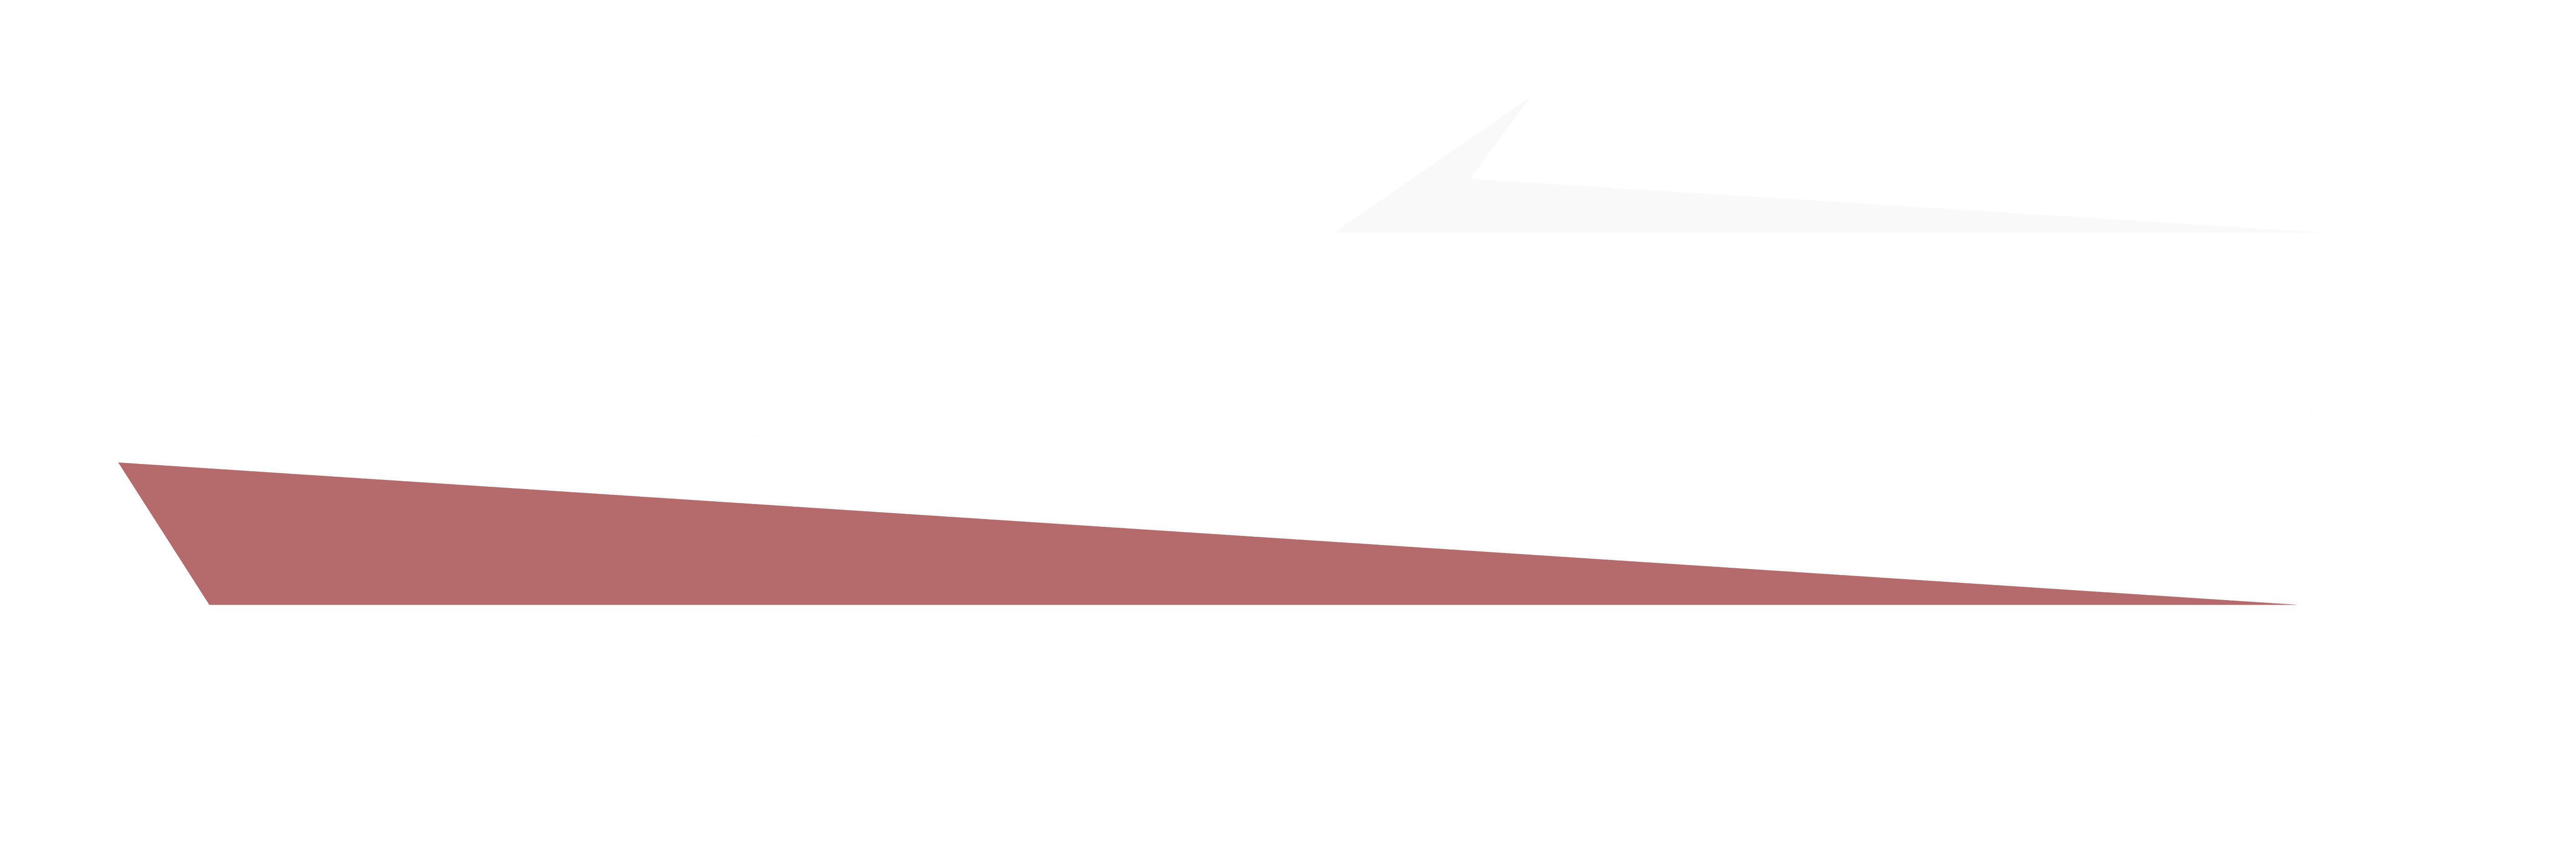 Tom Jenkins Yacht Sales